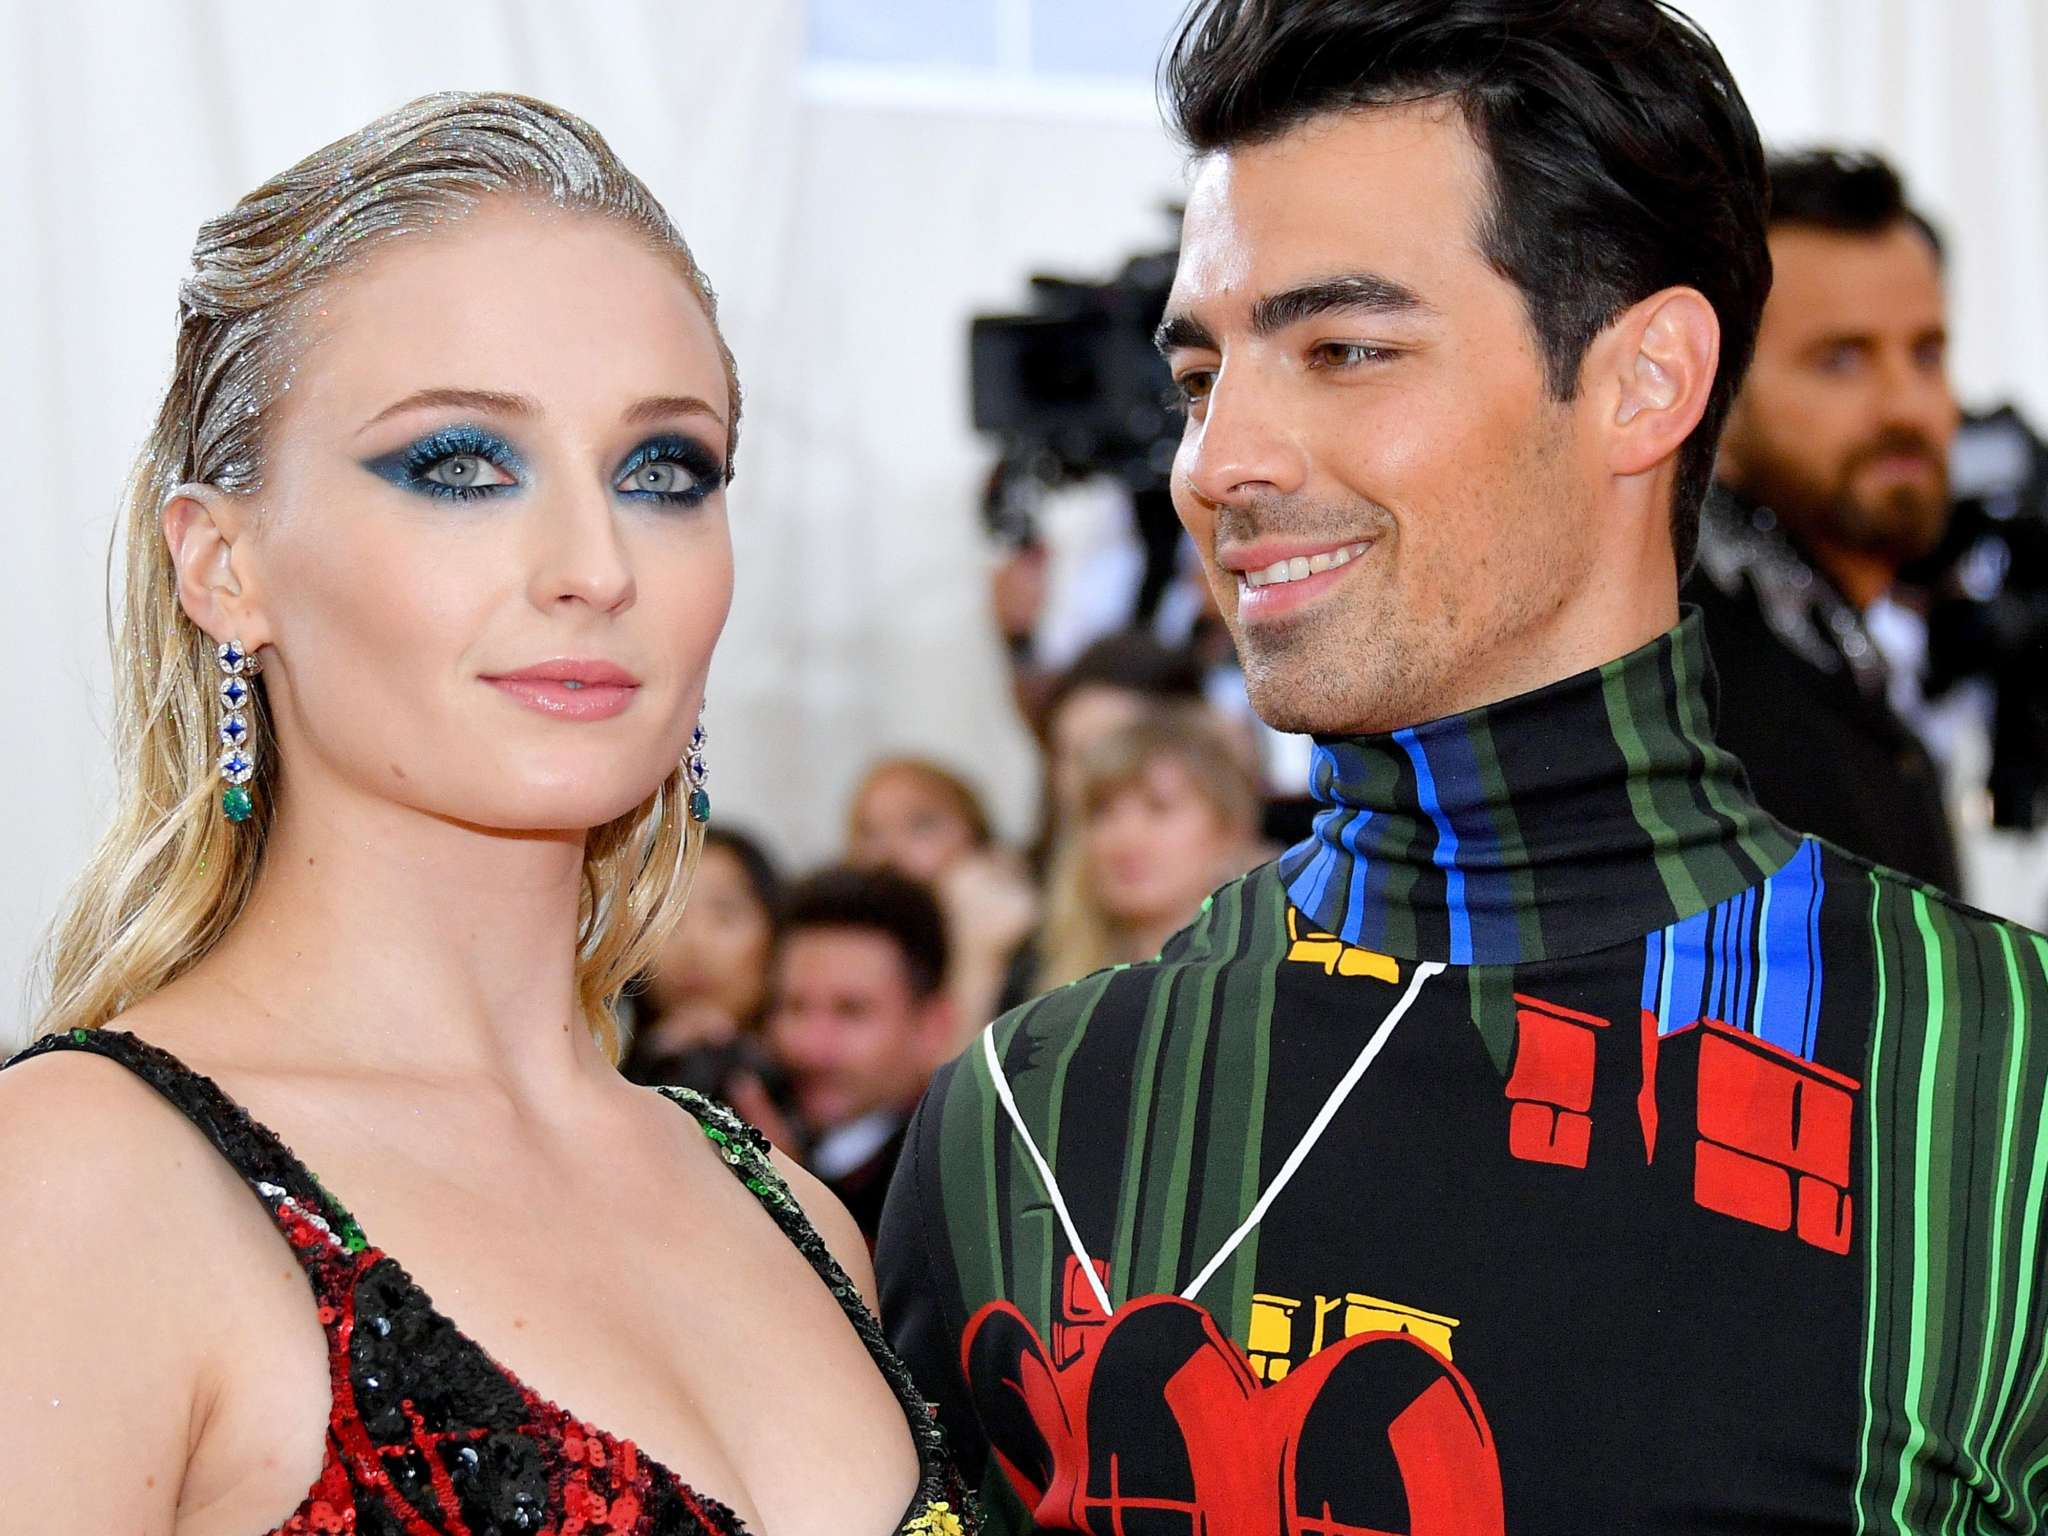 joe-jonas-and-sophie-turner-closer-than-ever-while-making-a-great-team-as-new-parents